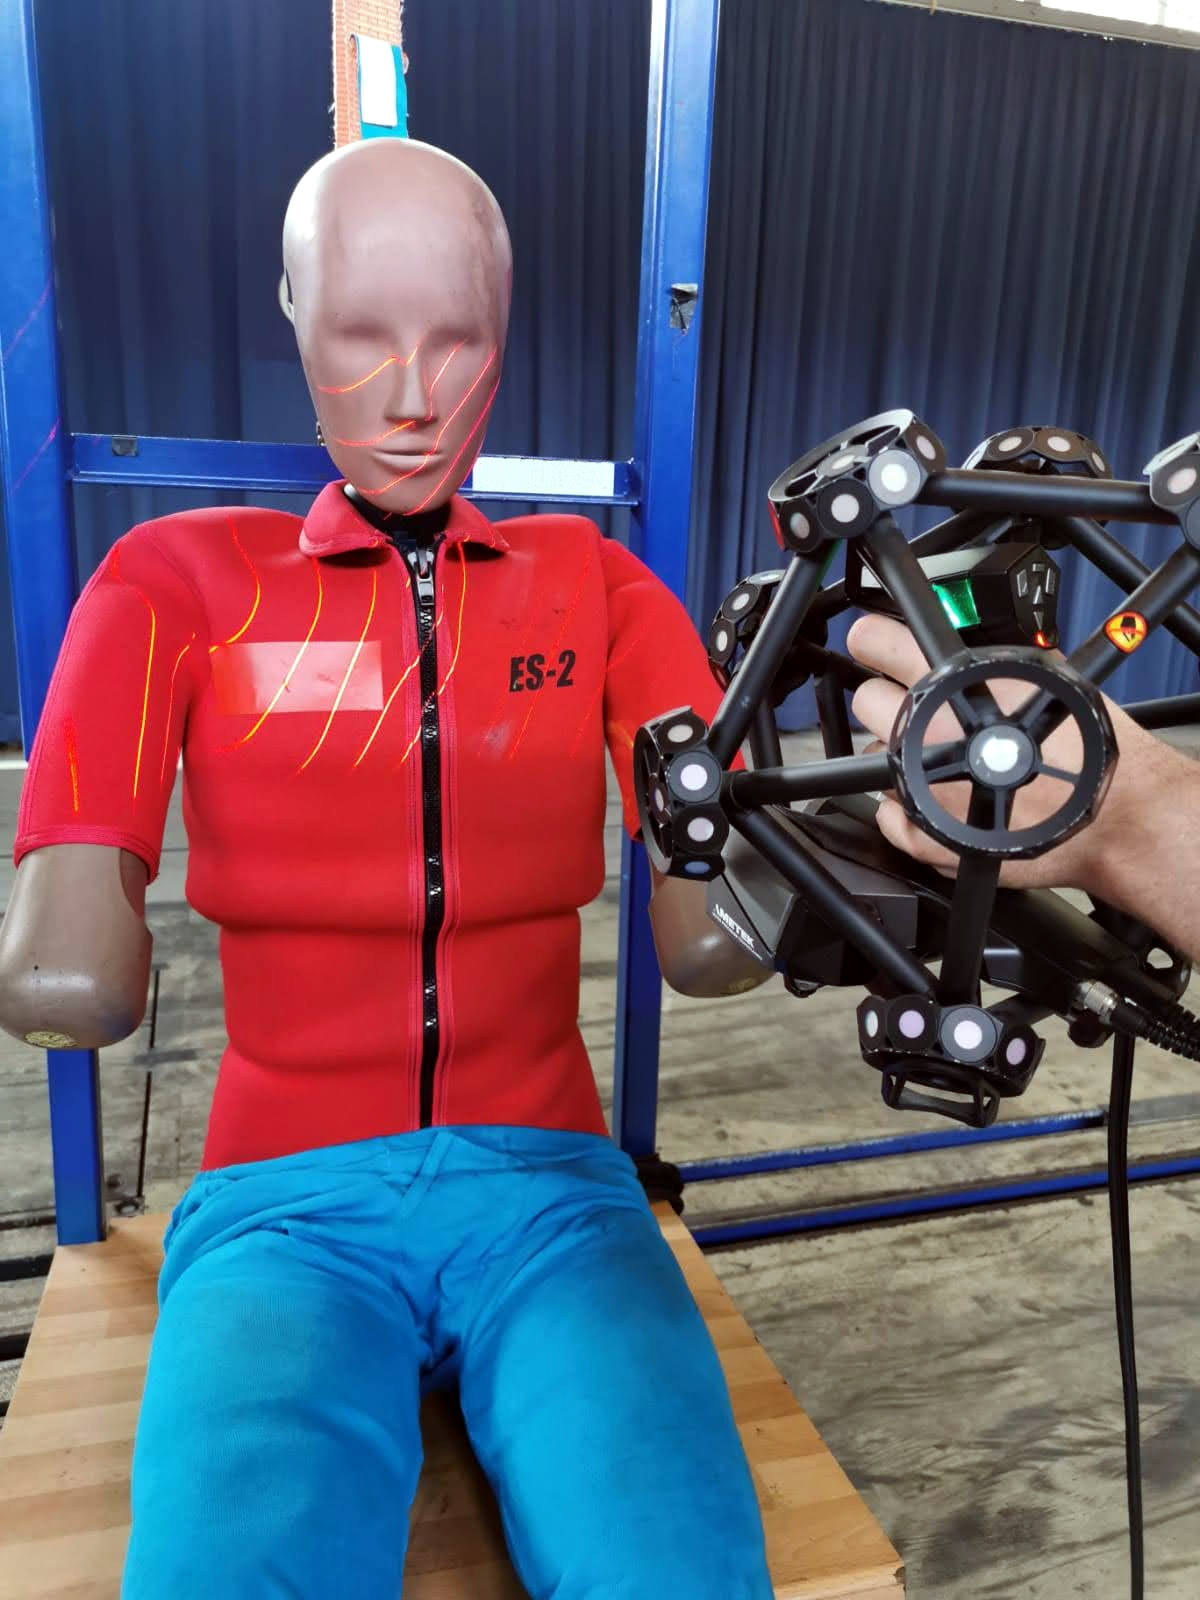 MetraSCAN 3D scanning red shirt dummy with lasers